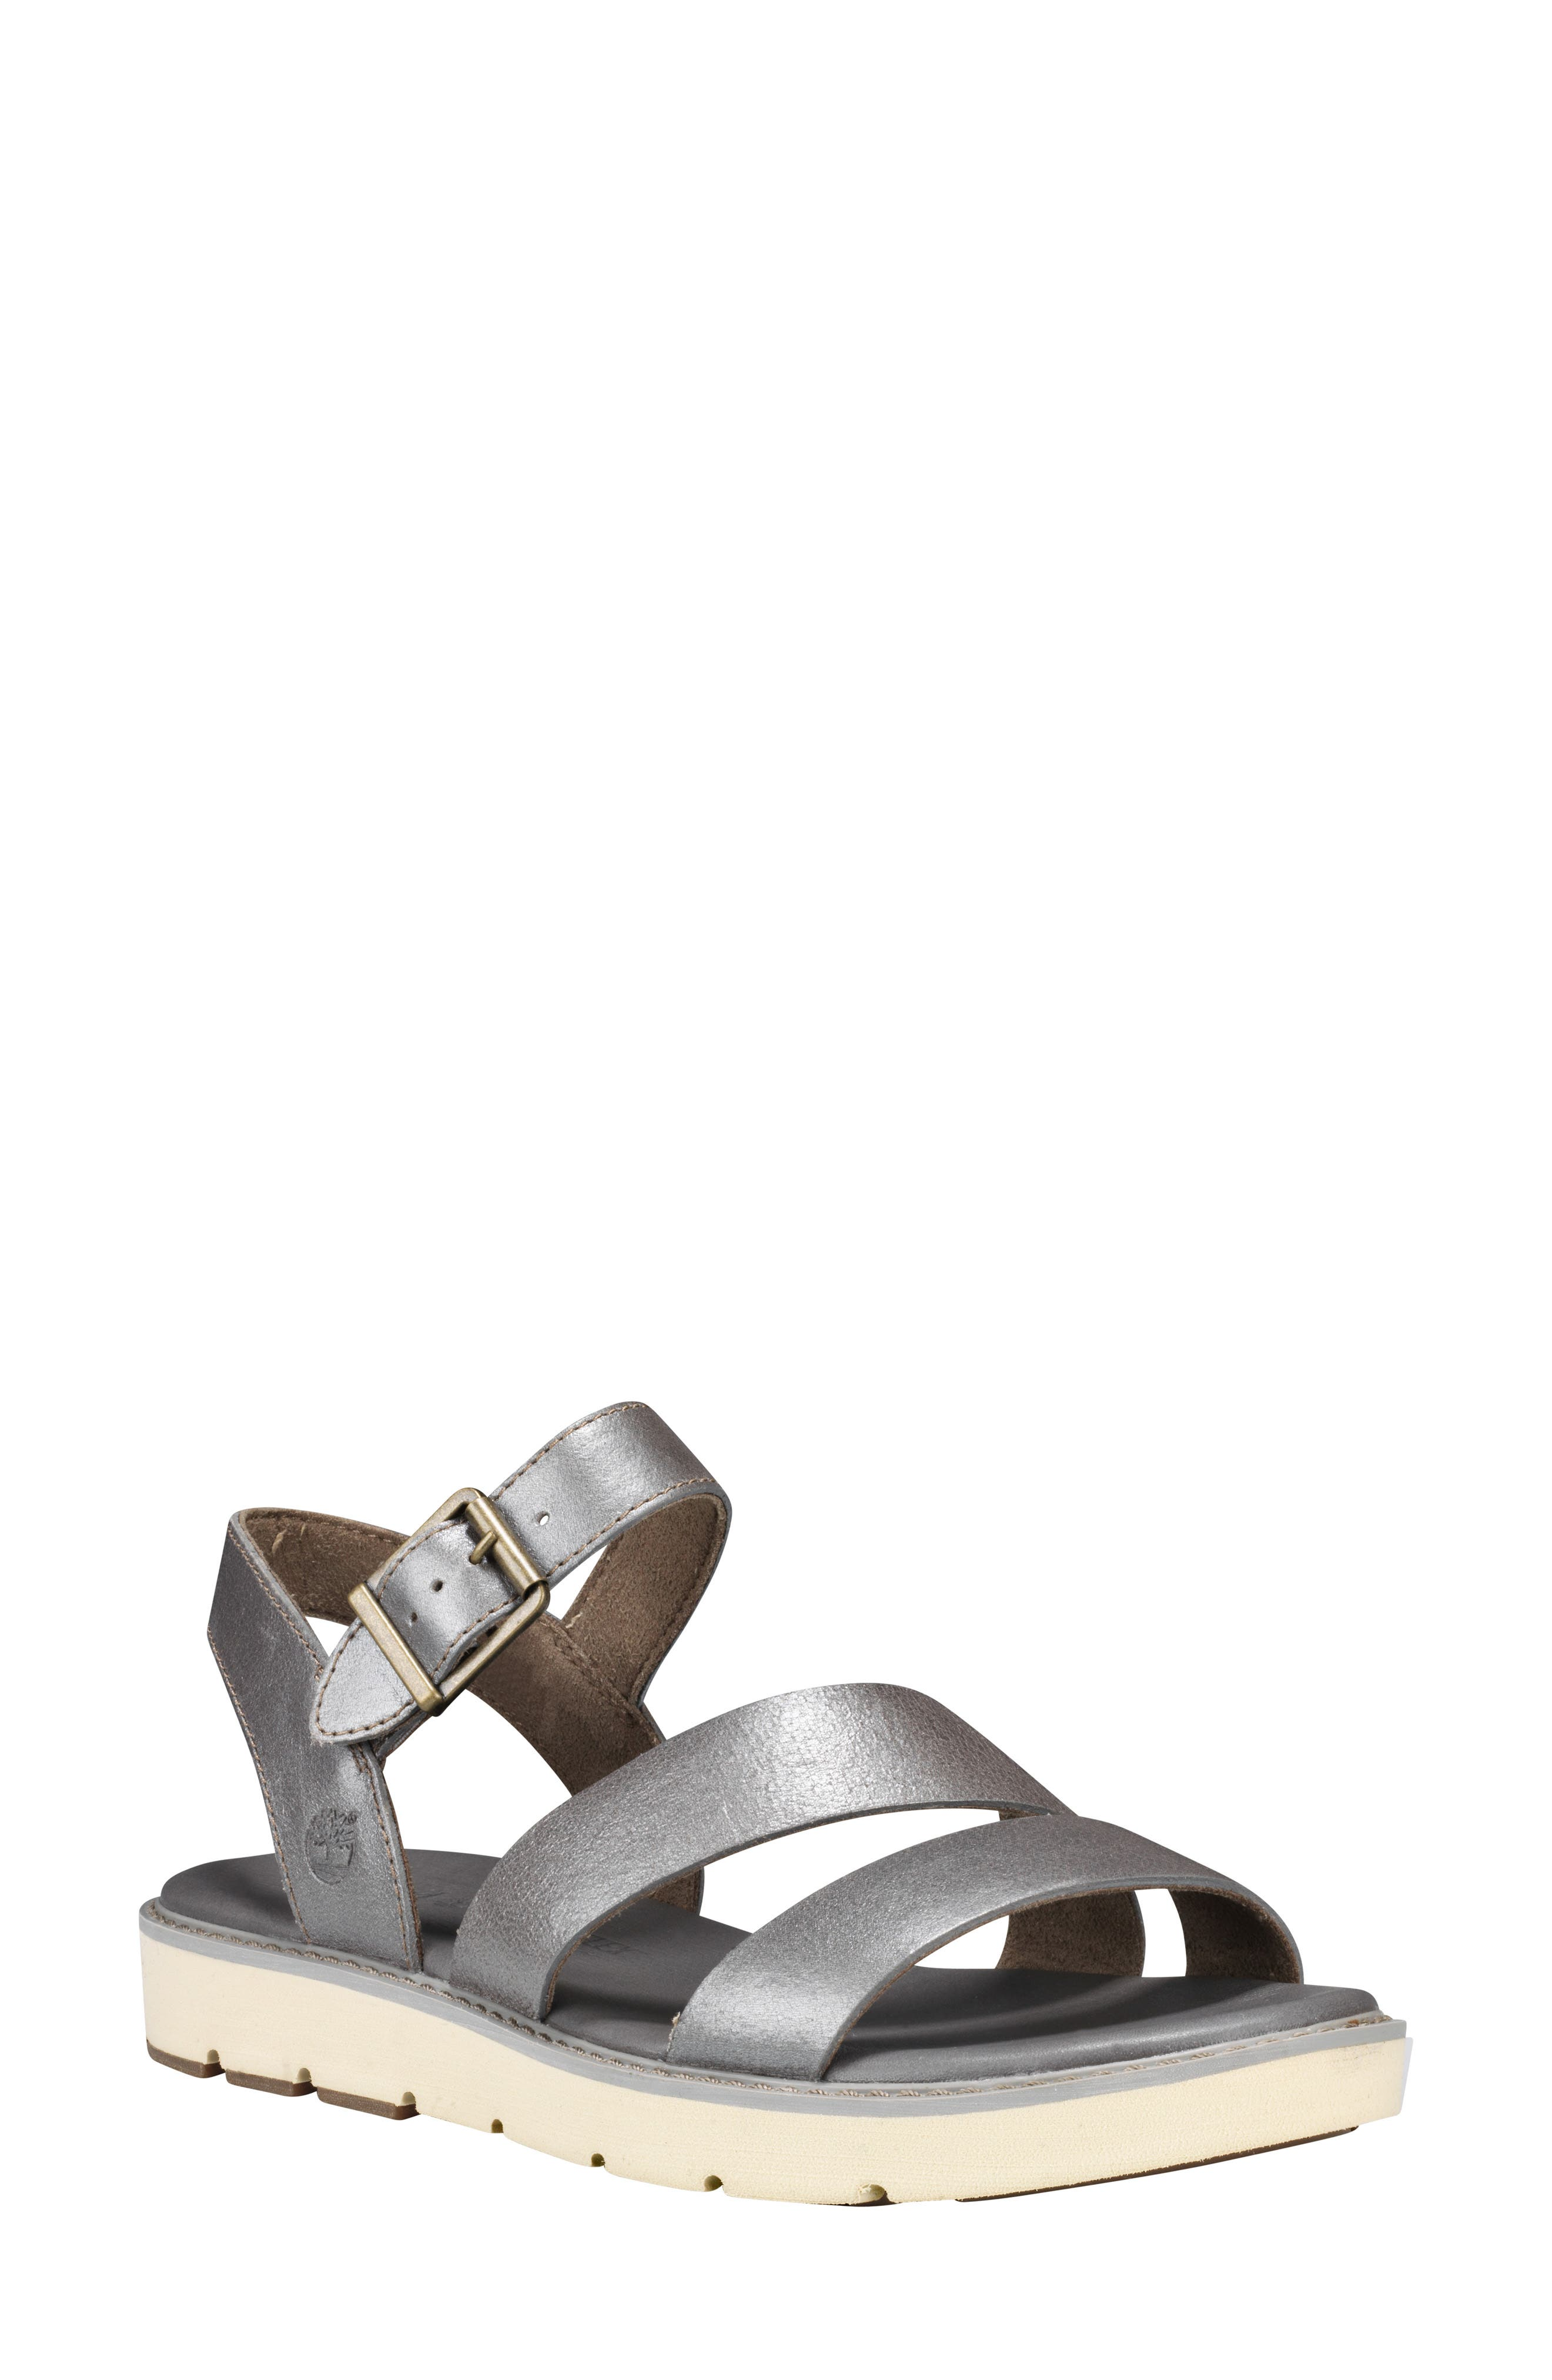 TIMBERLAND Bailey Park Sandal, Main, color, SILVER METALLIC LEATHER